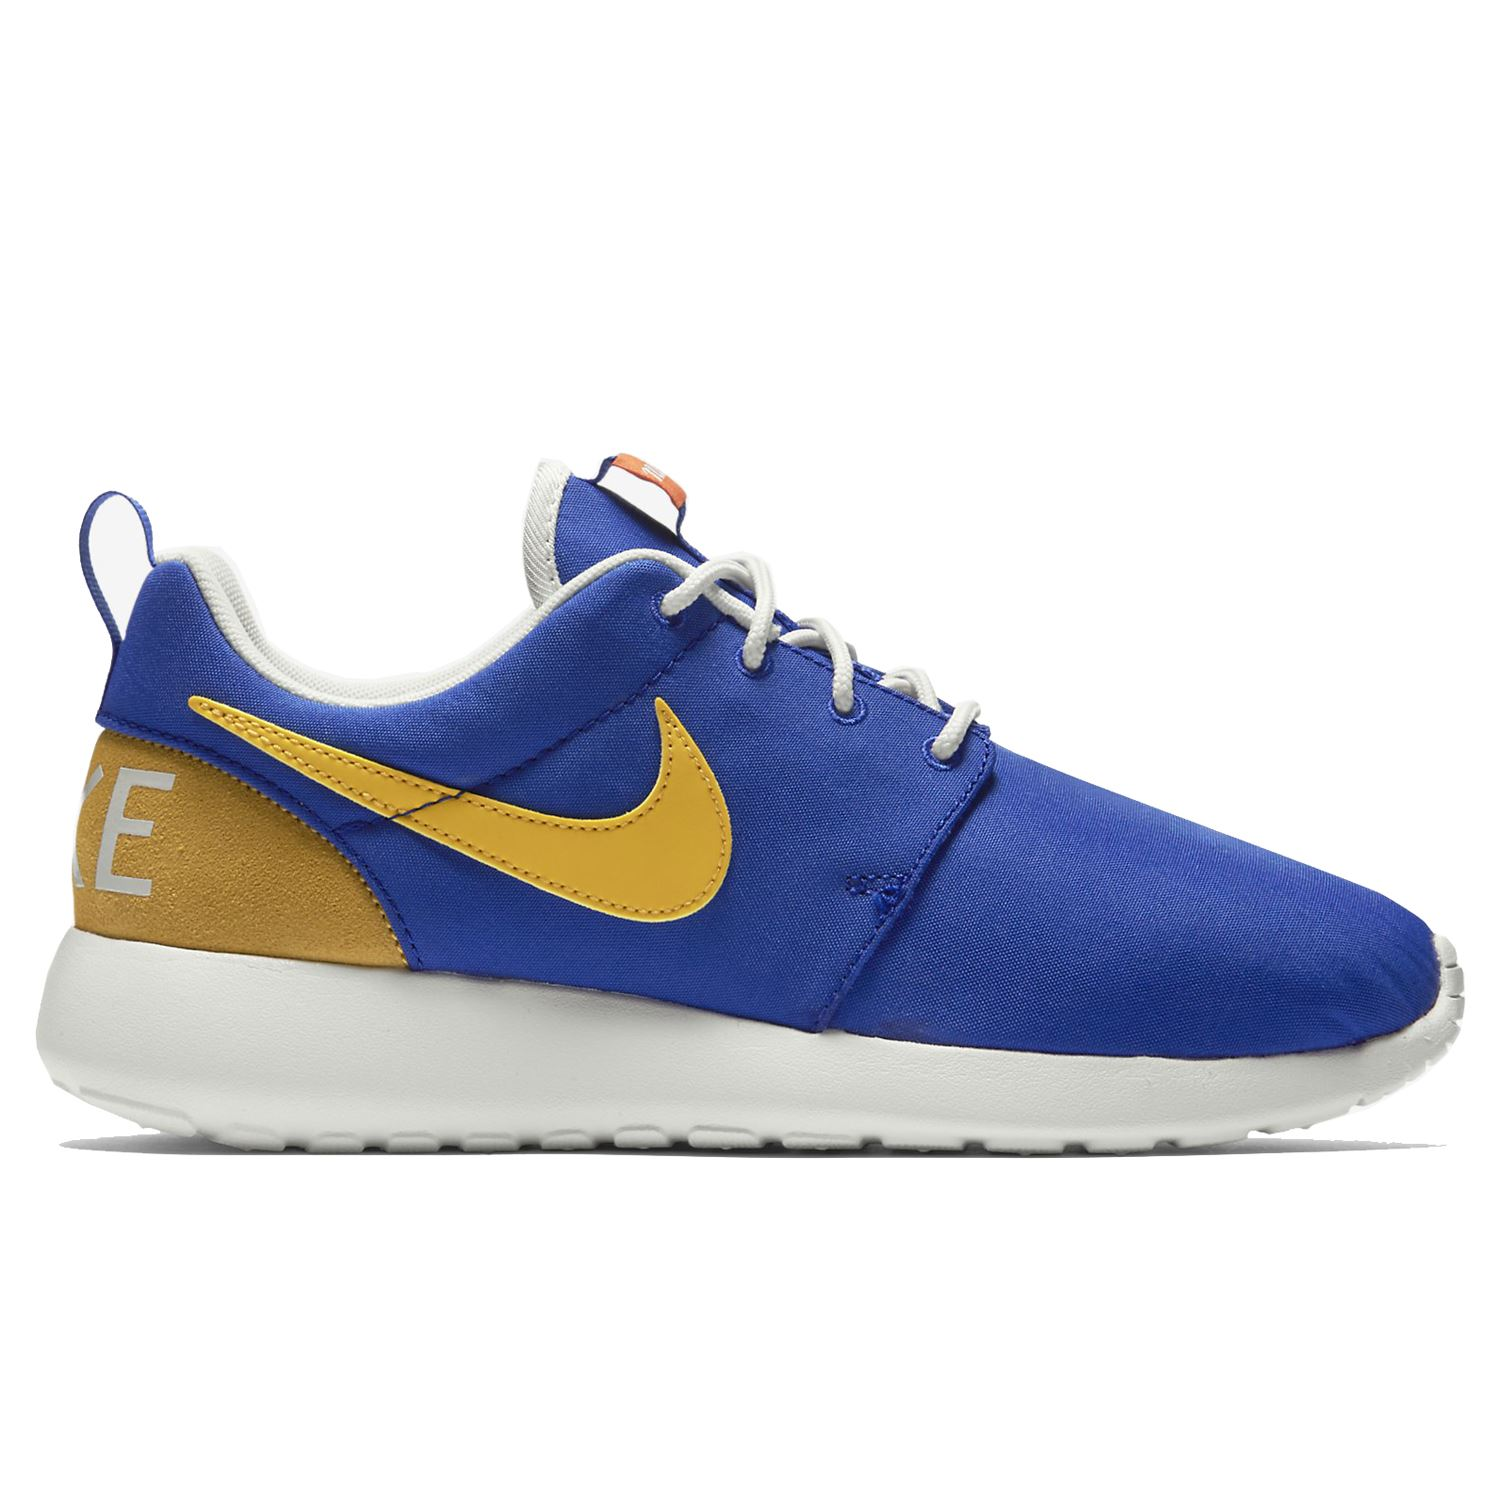 c1662a08913dc Image is loading Nike-Roshe-One-Retro-Blue-Yellow-Womens-Trainers